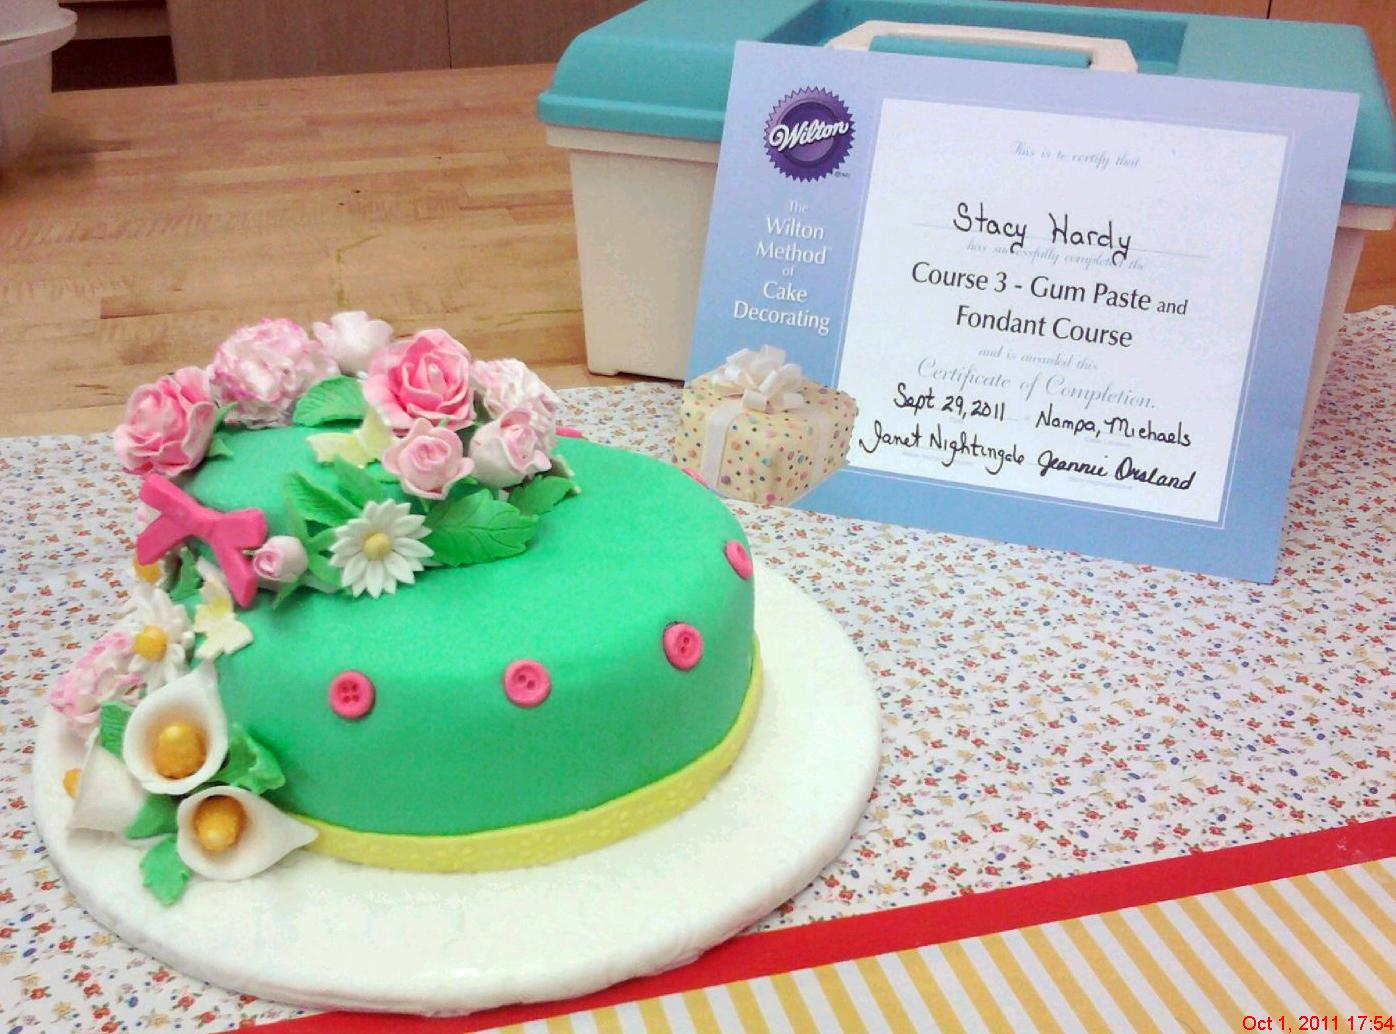 wilton cake decorating classes vetwillcom - Wilton Cake Decorating Classes